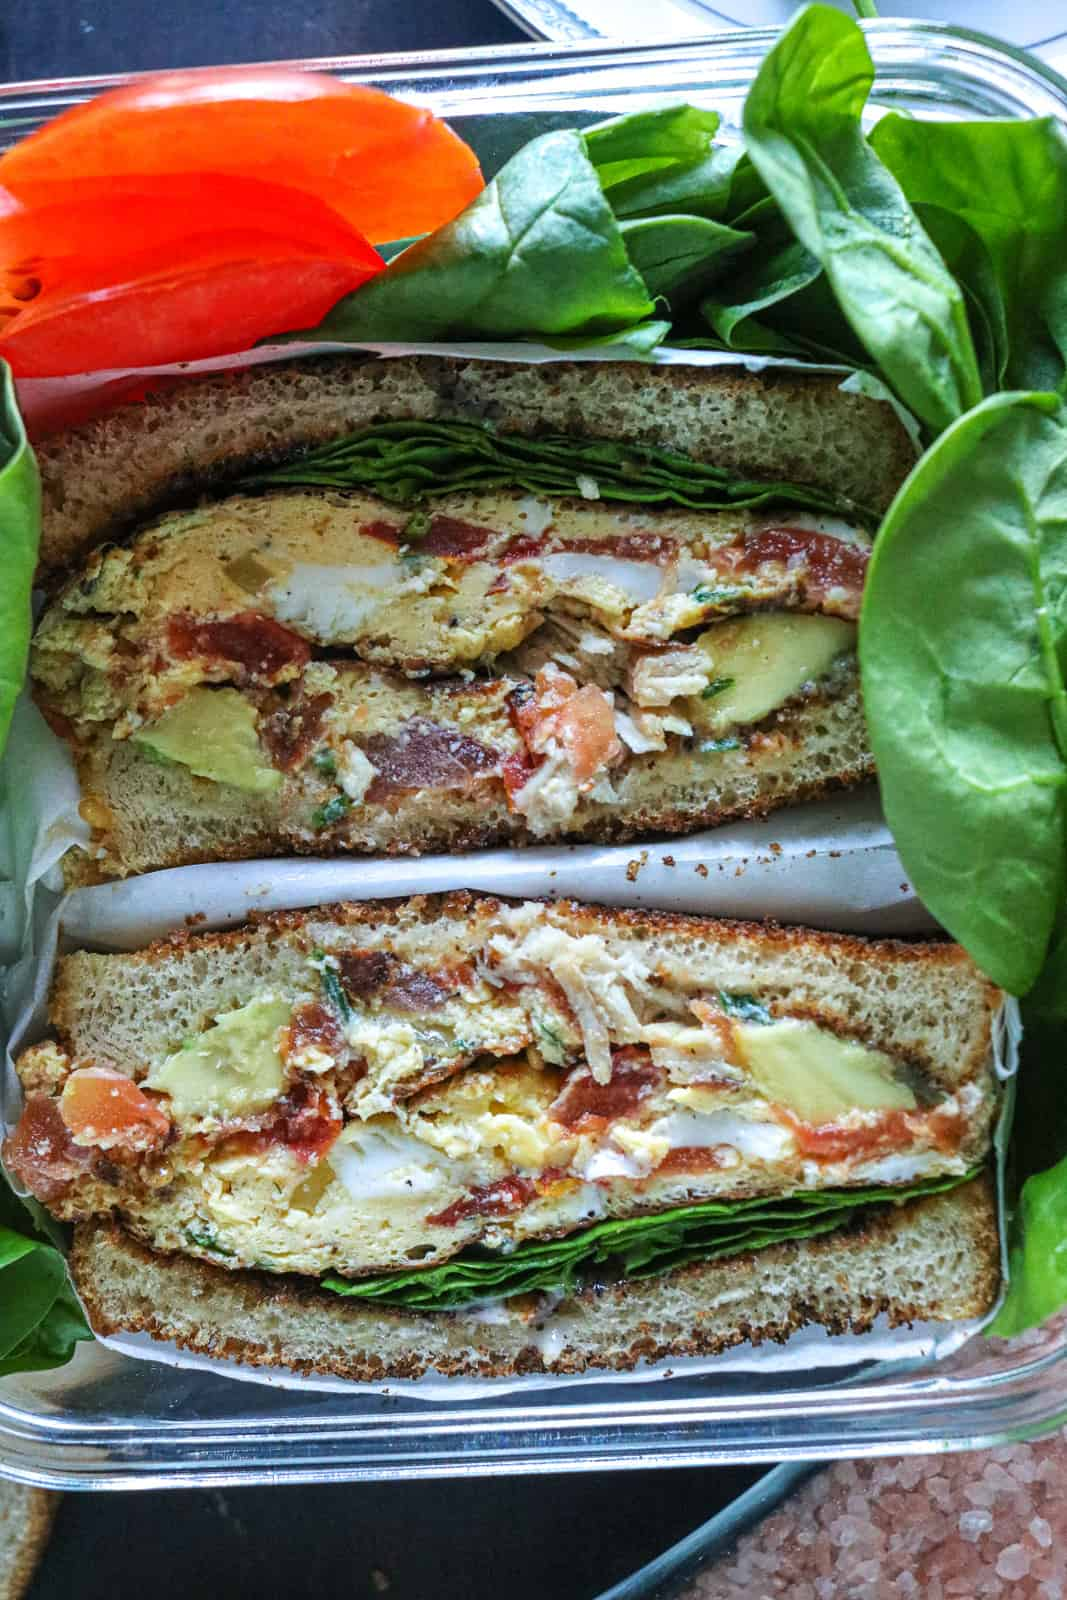 Egg sandwich with spinach and tomatoes